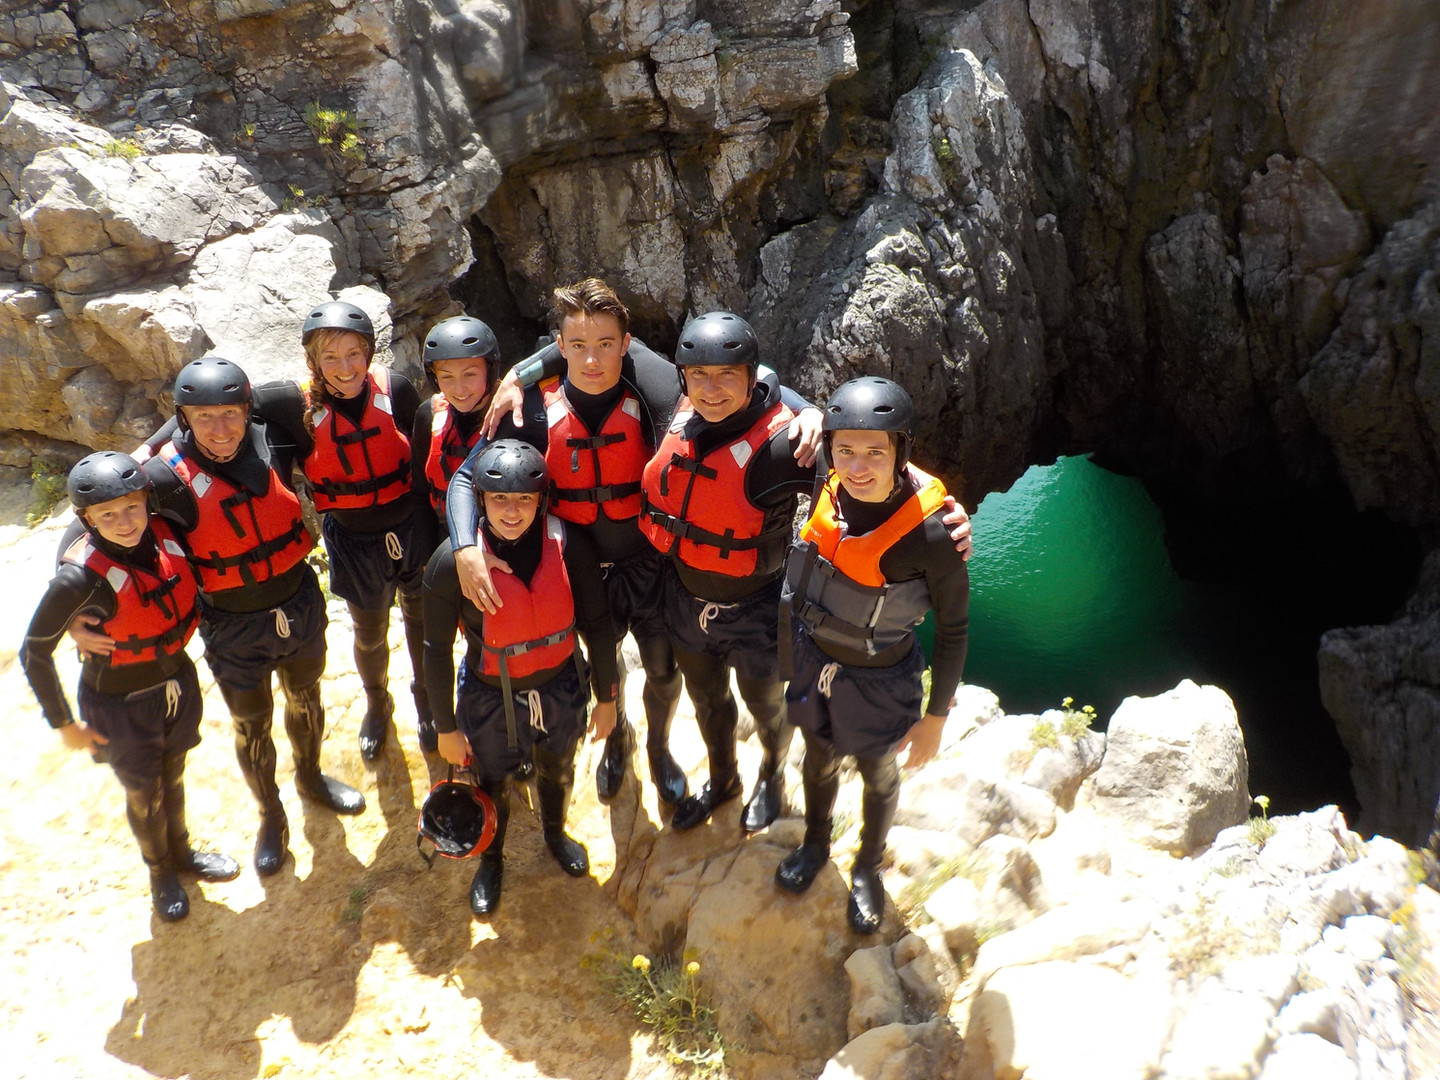 Family portrait on top of green cave Algarve